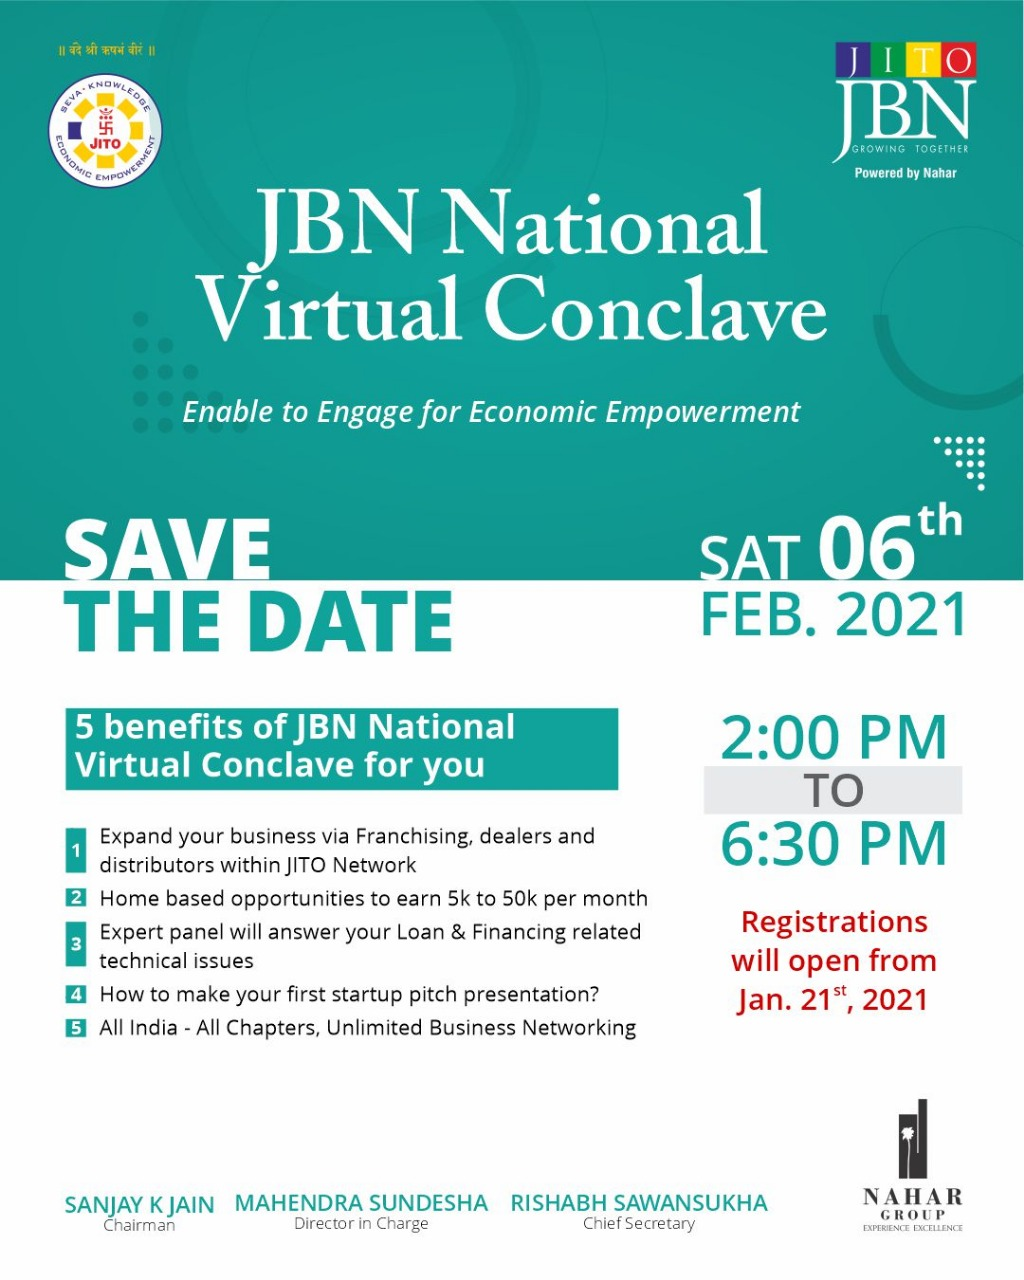 JBN National Virtual Conclave